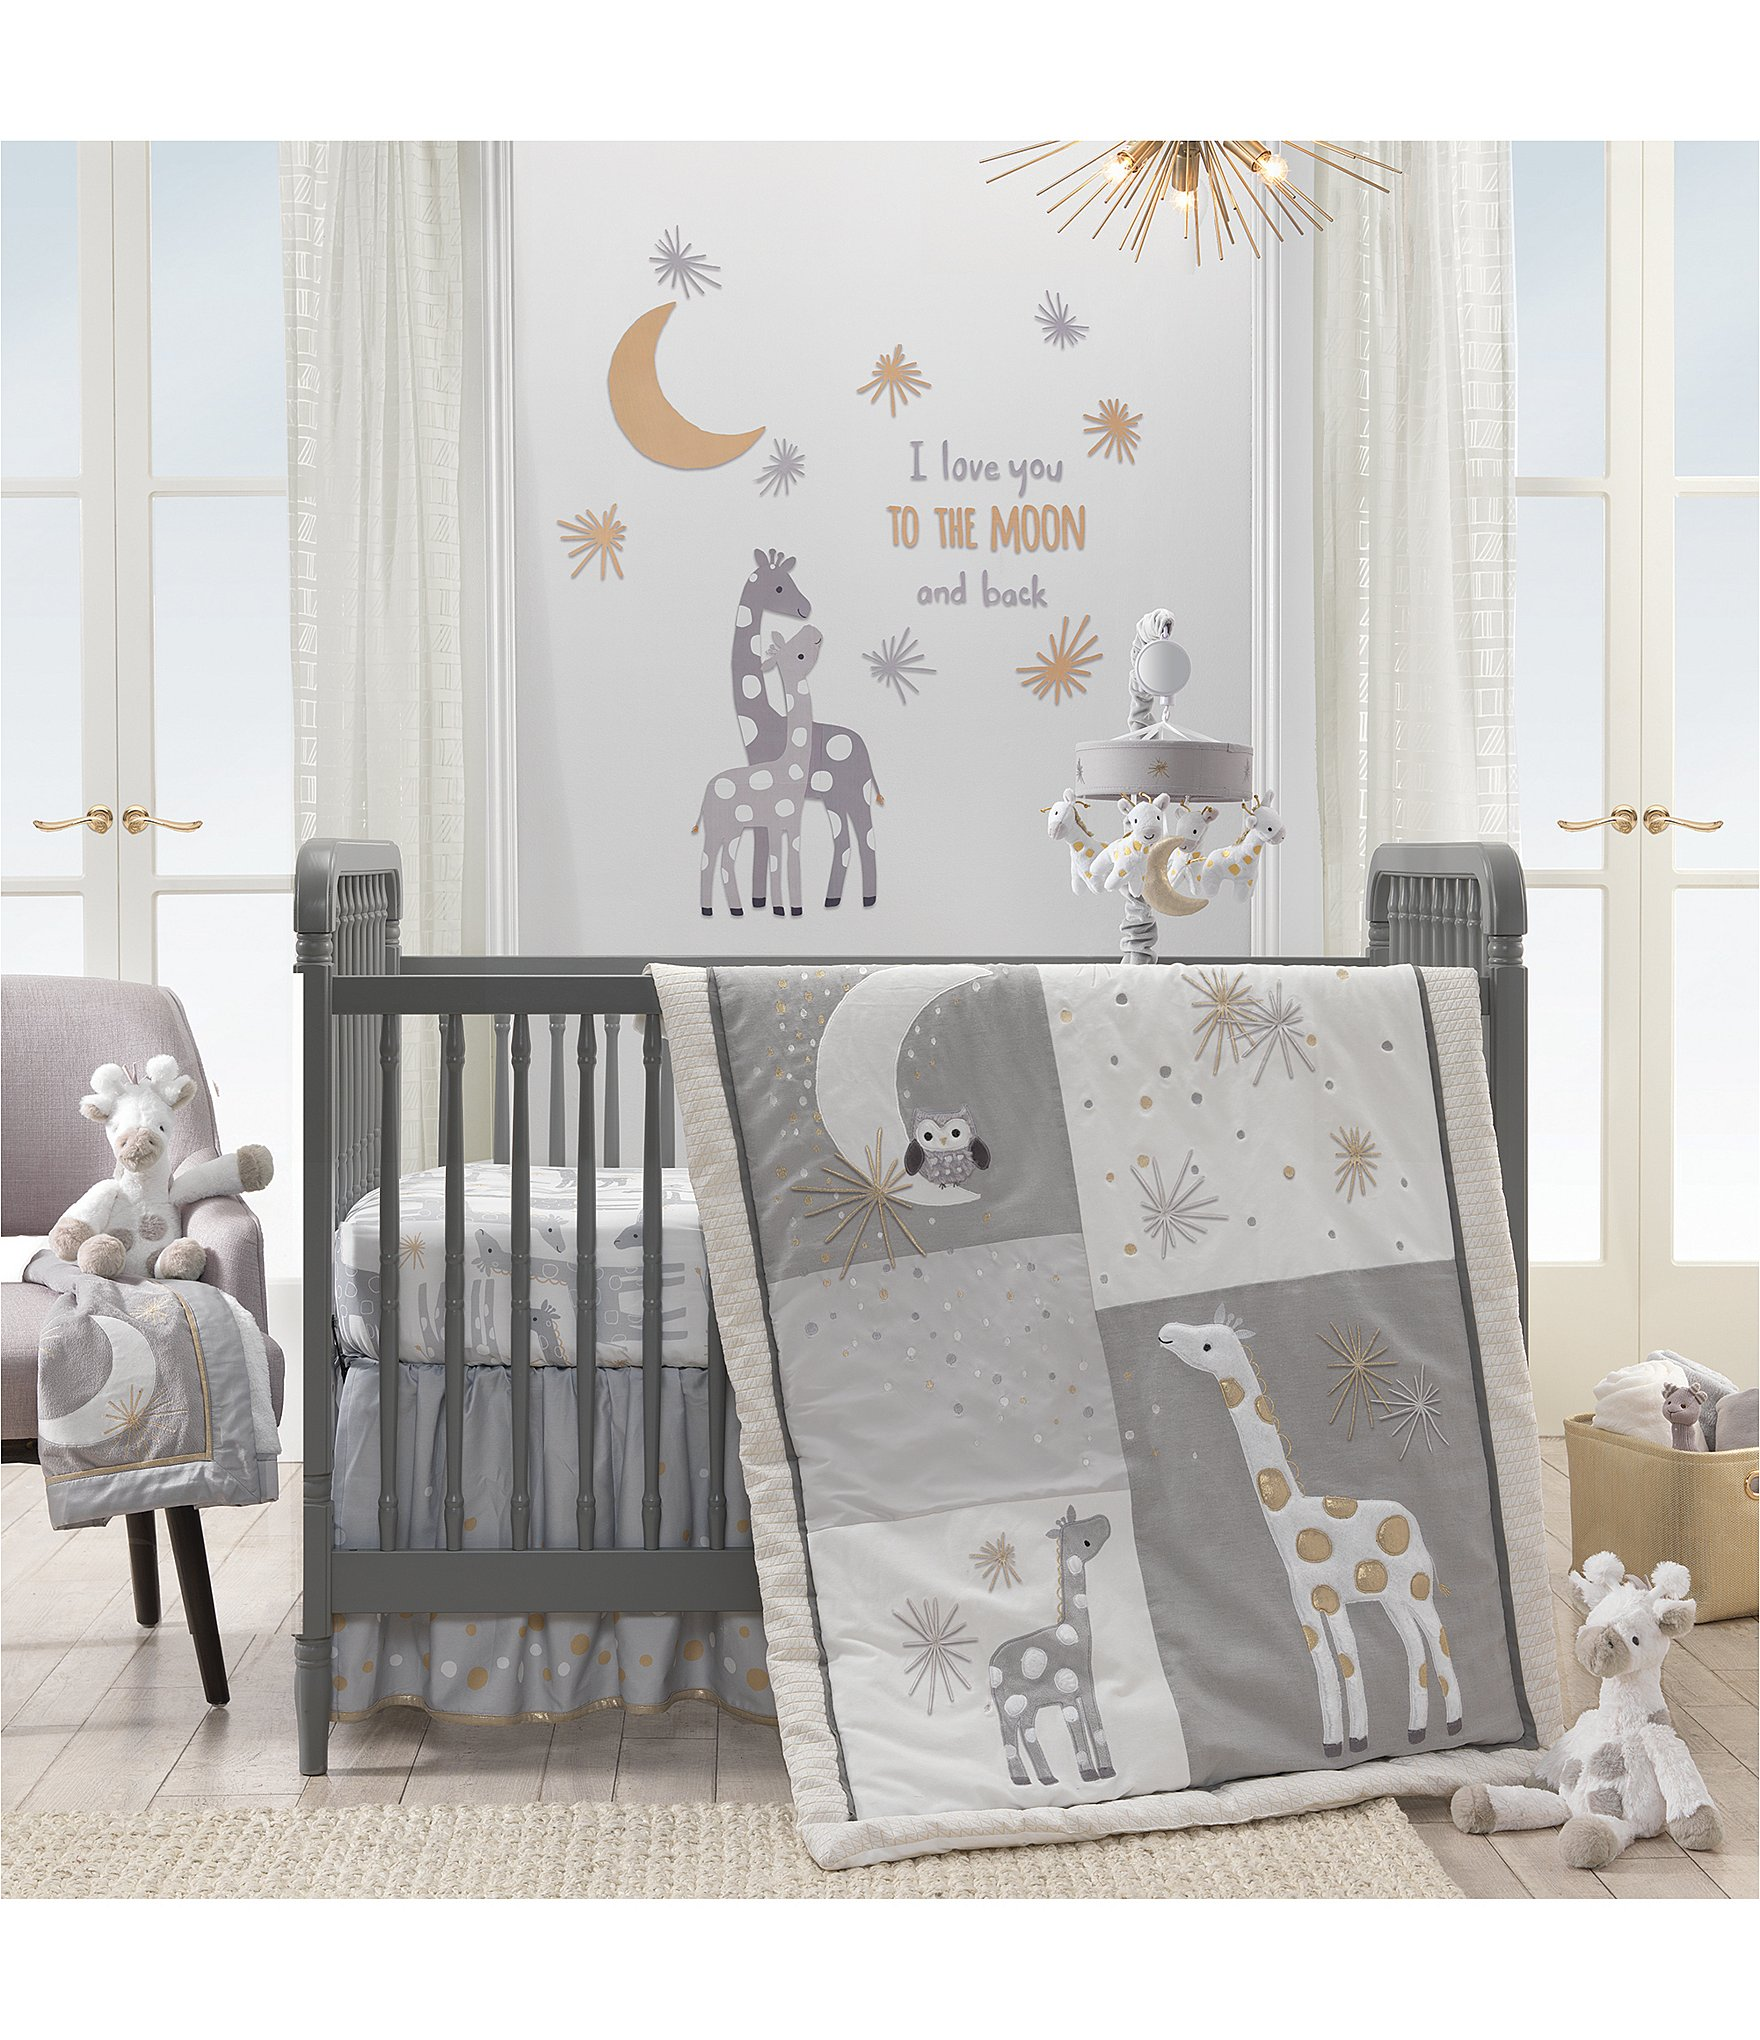 Lambs Ivy Signature Moonbeams 3 Piece Crib Bedding Set Dillard S